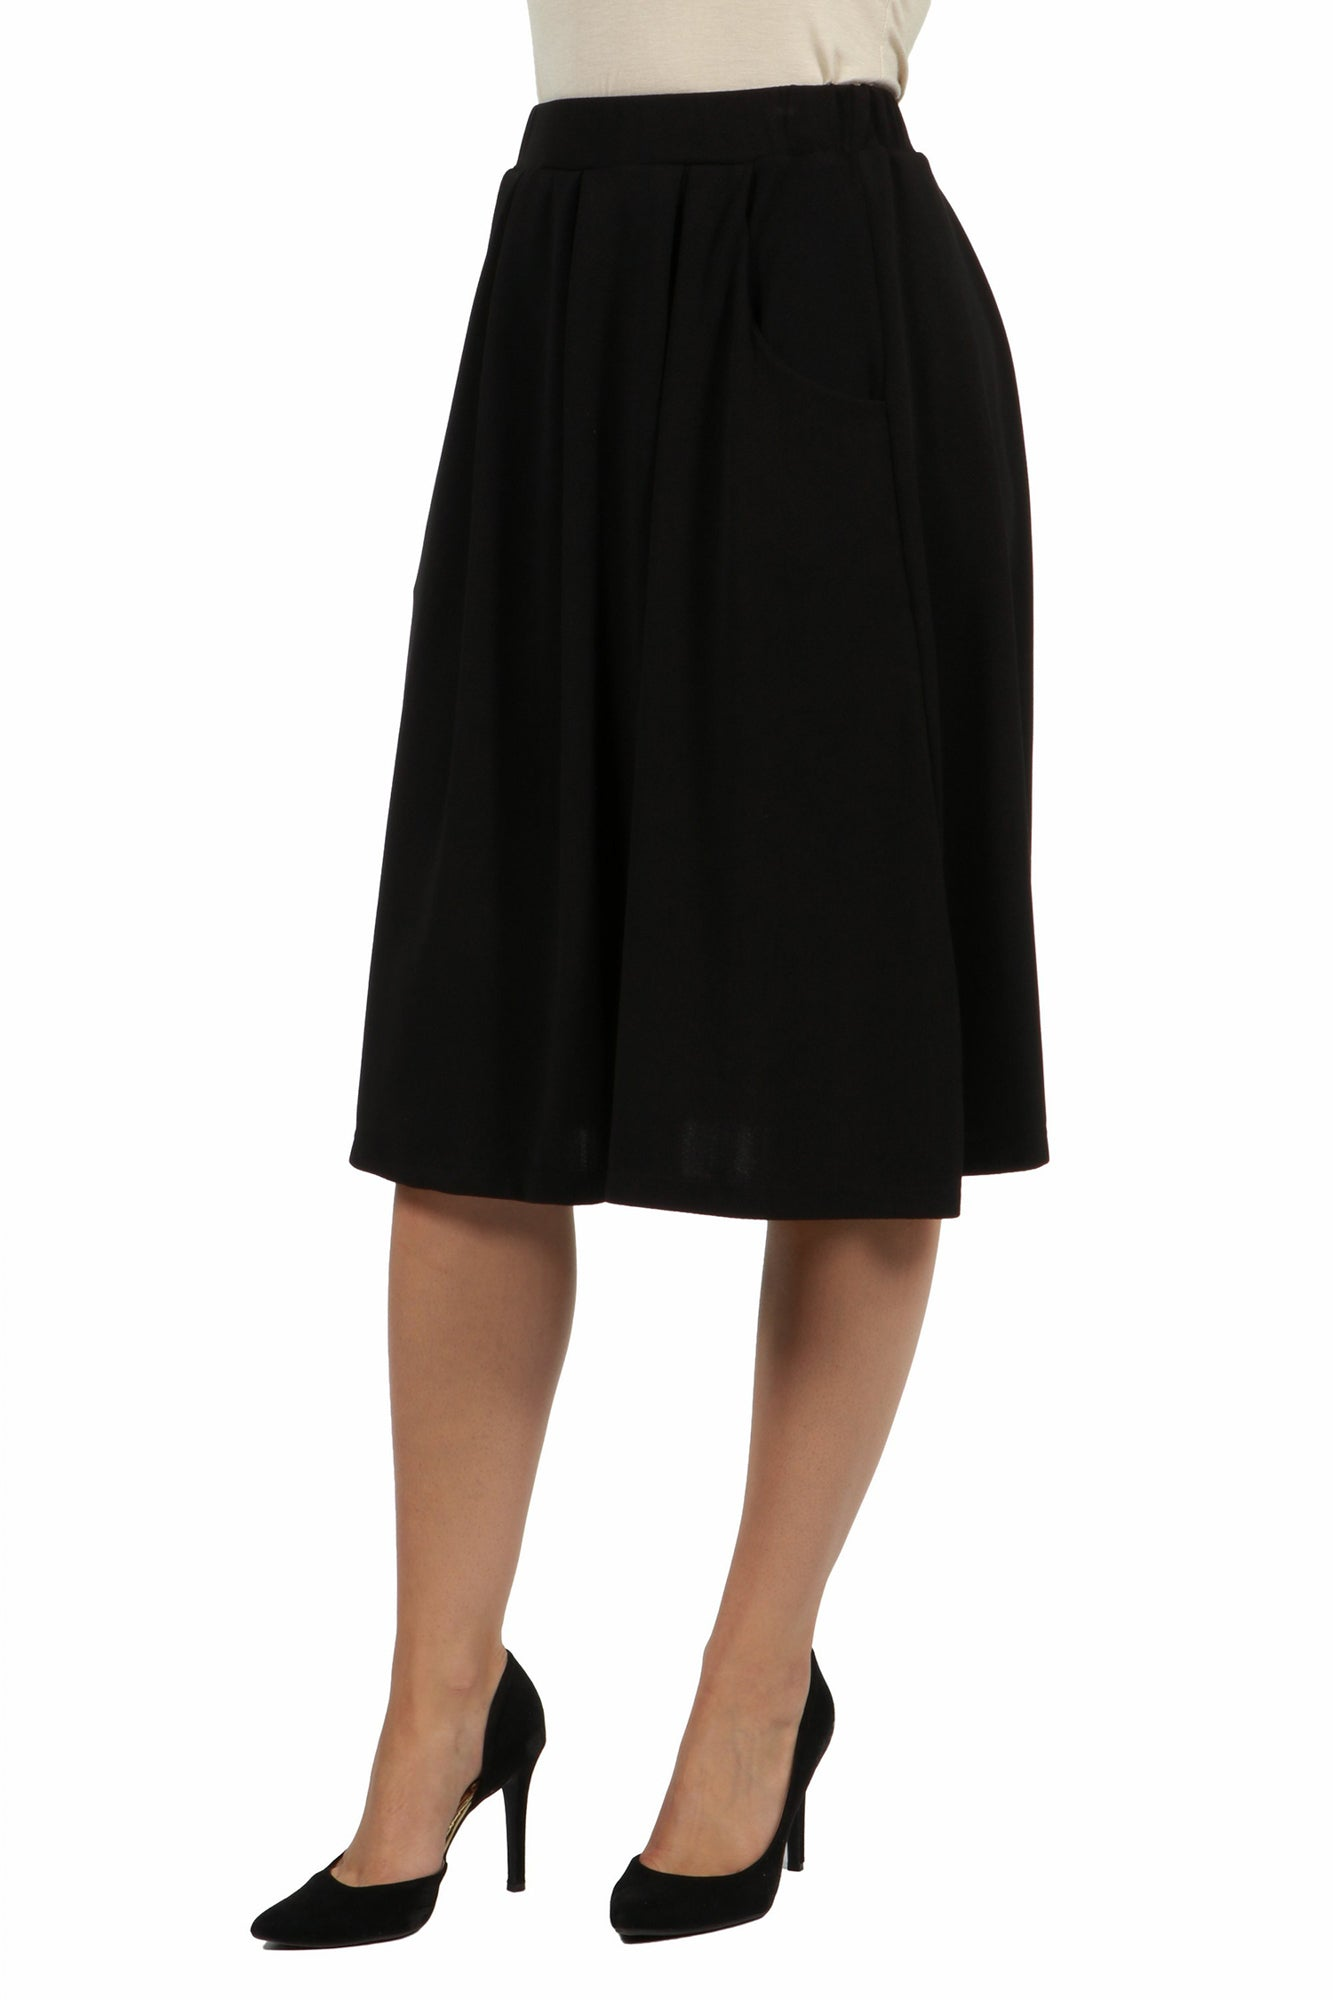 24seven Comfort Apparel Classic Knee Length Black Skirt With Pockets-SKIRTS-24Seven Comfort Apparel-BLACK-S-24/7 Comfort Apparel